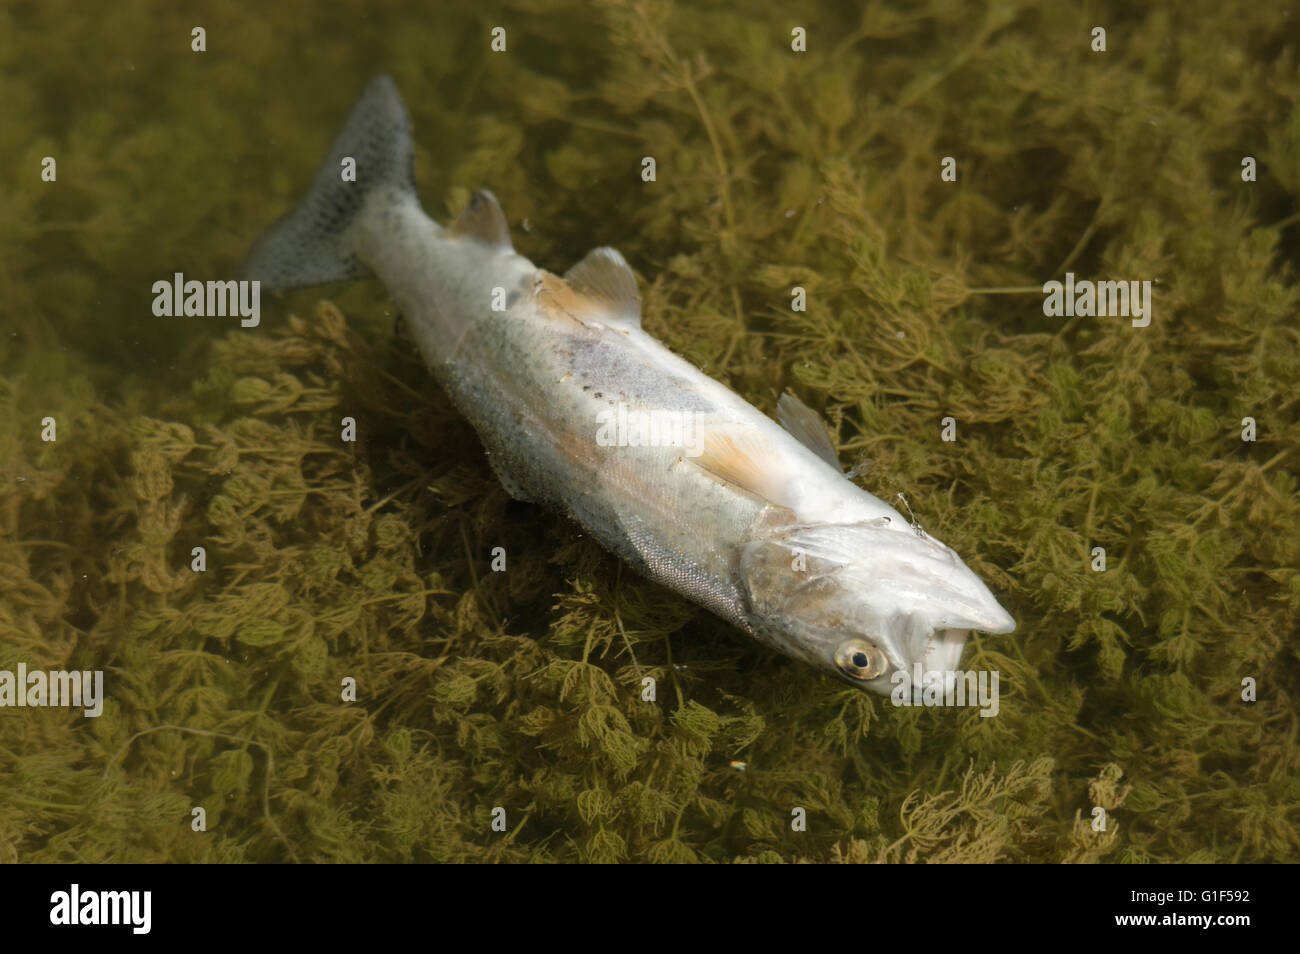 dead trout floating belly up in the water above some water plants - Stock Image